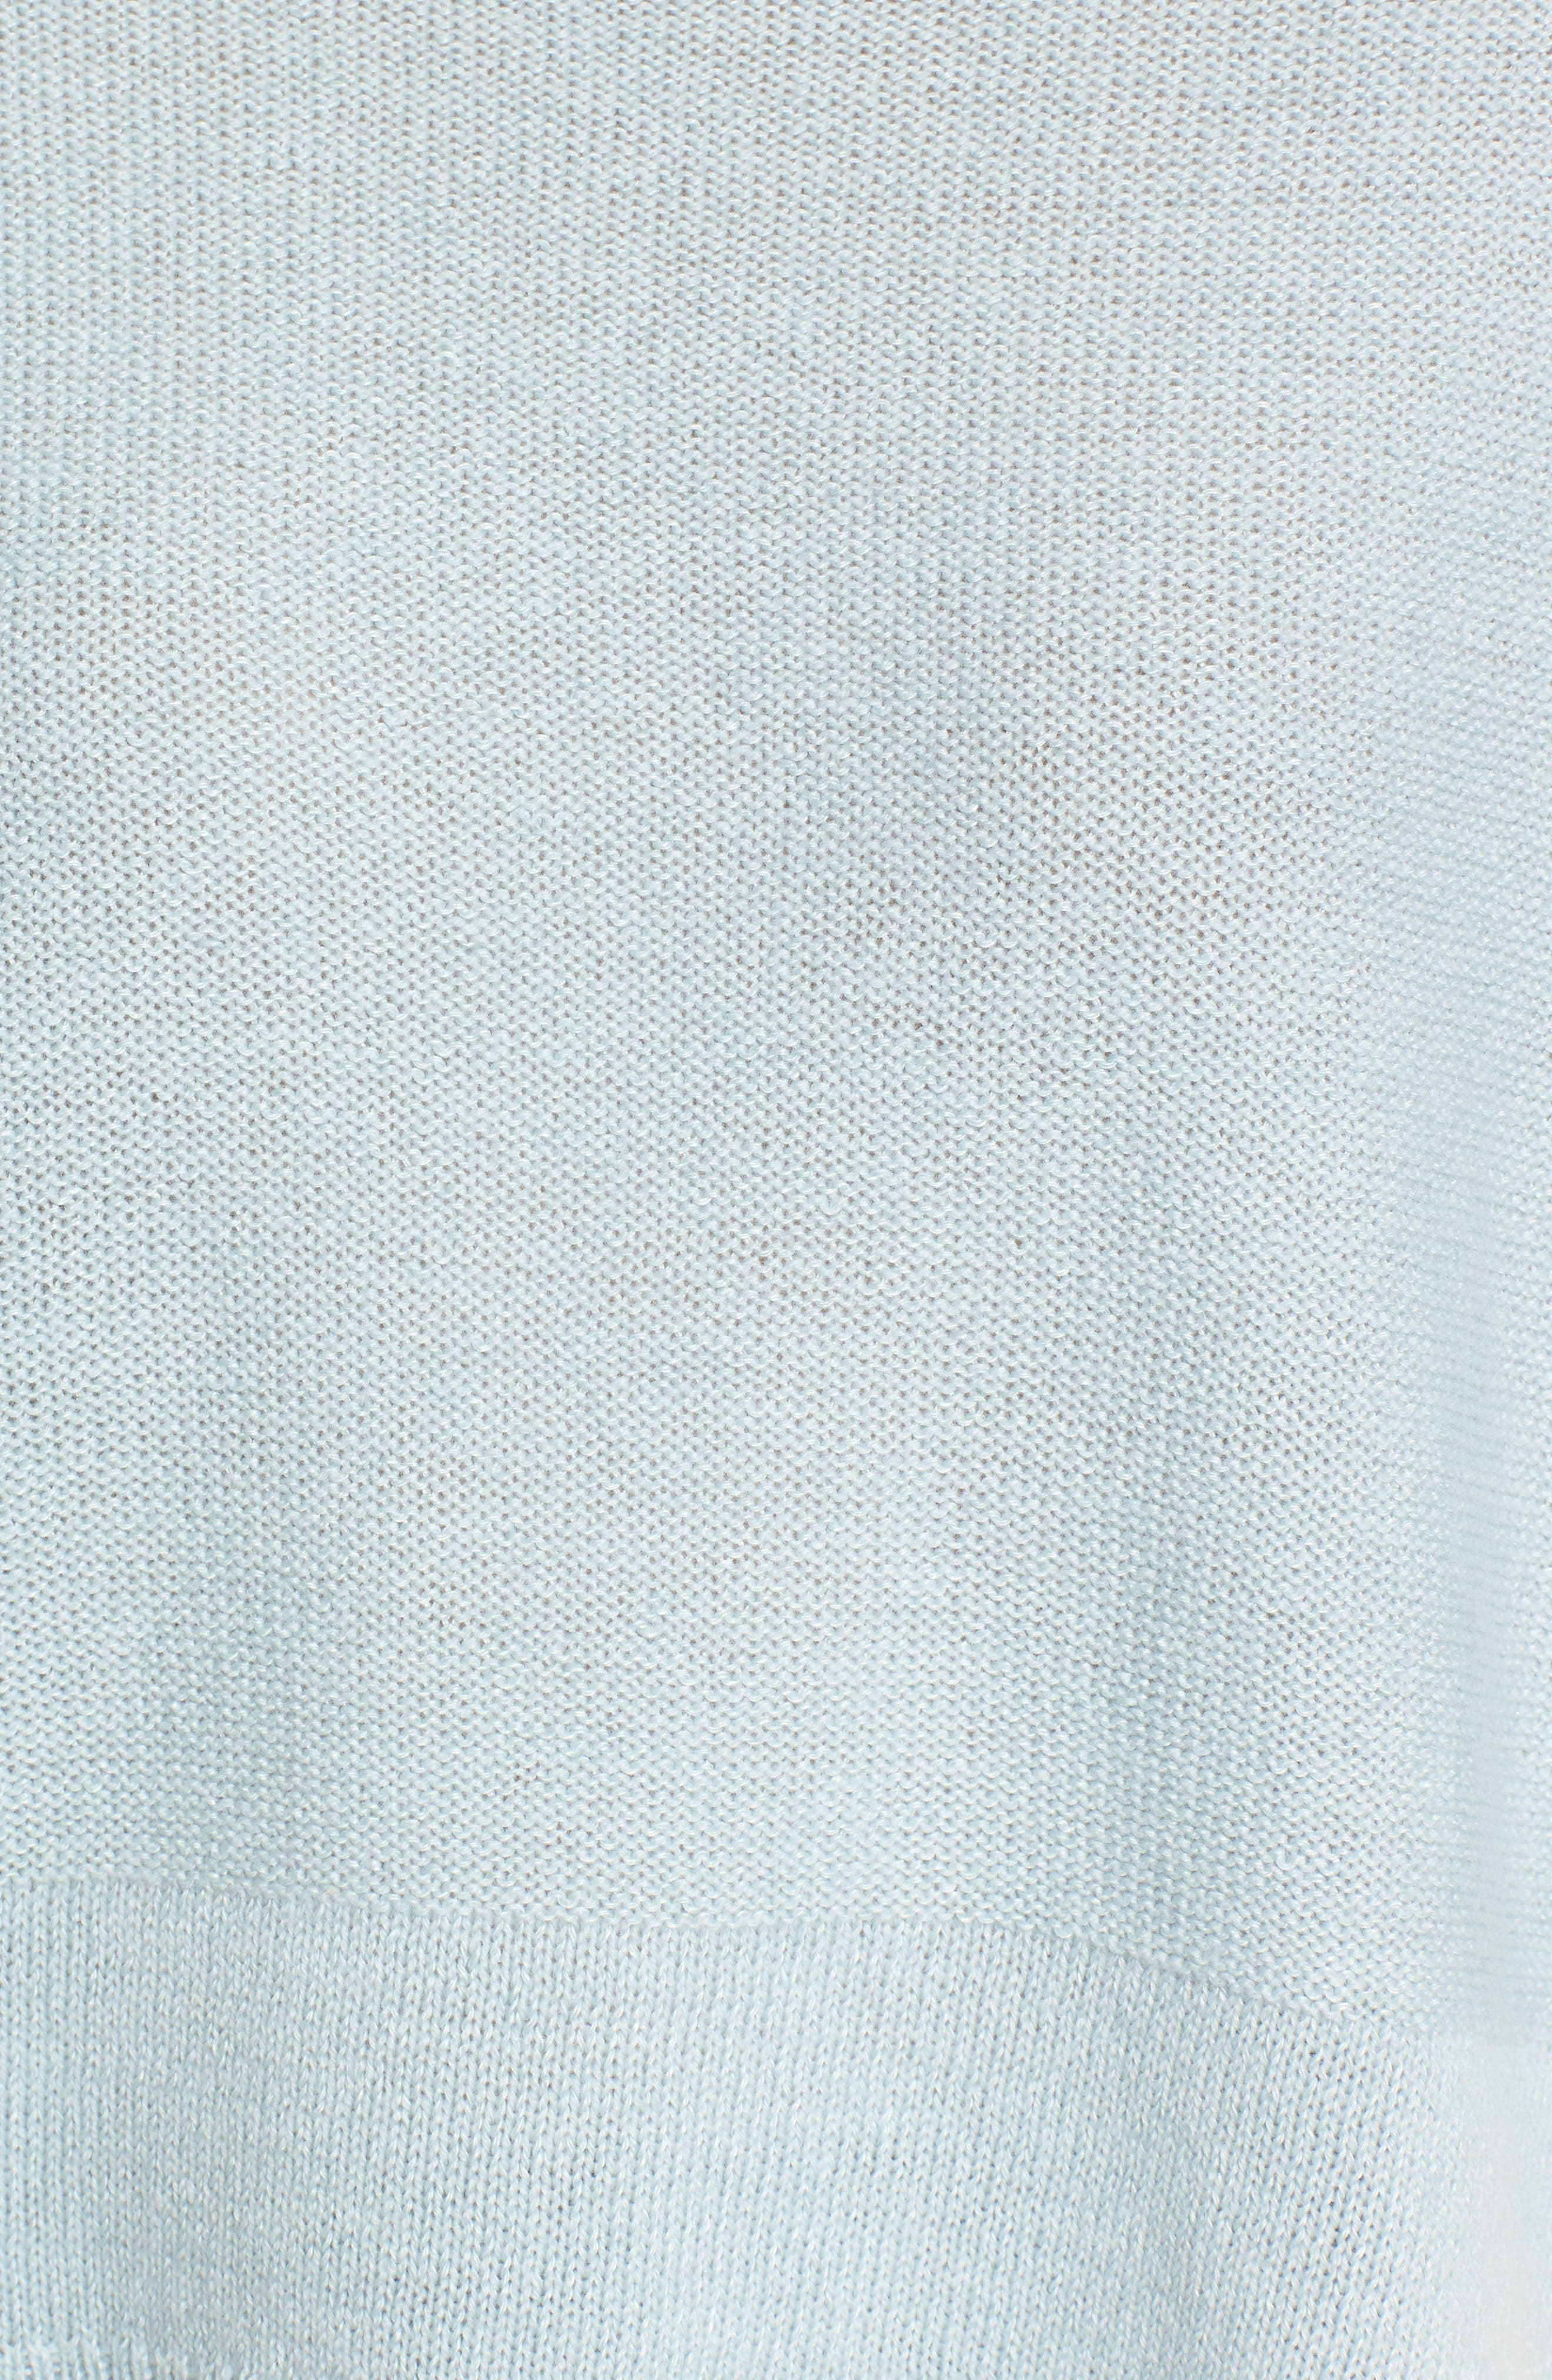 Linen & Cashmere Sweater,                             Alternate thumbnail 5, color,                             Teal Steam